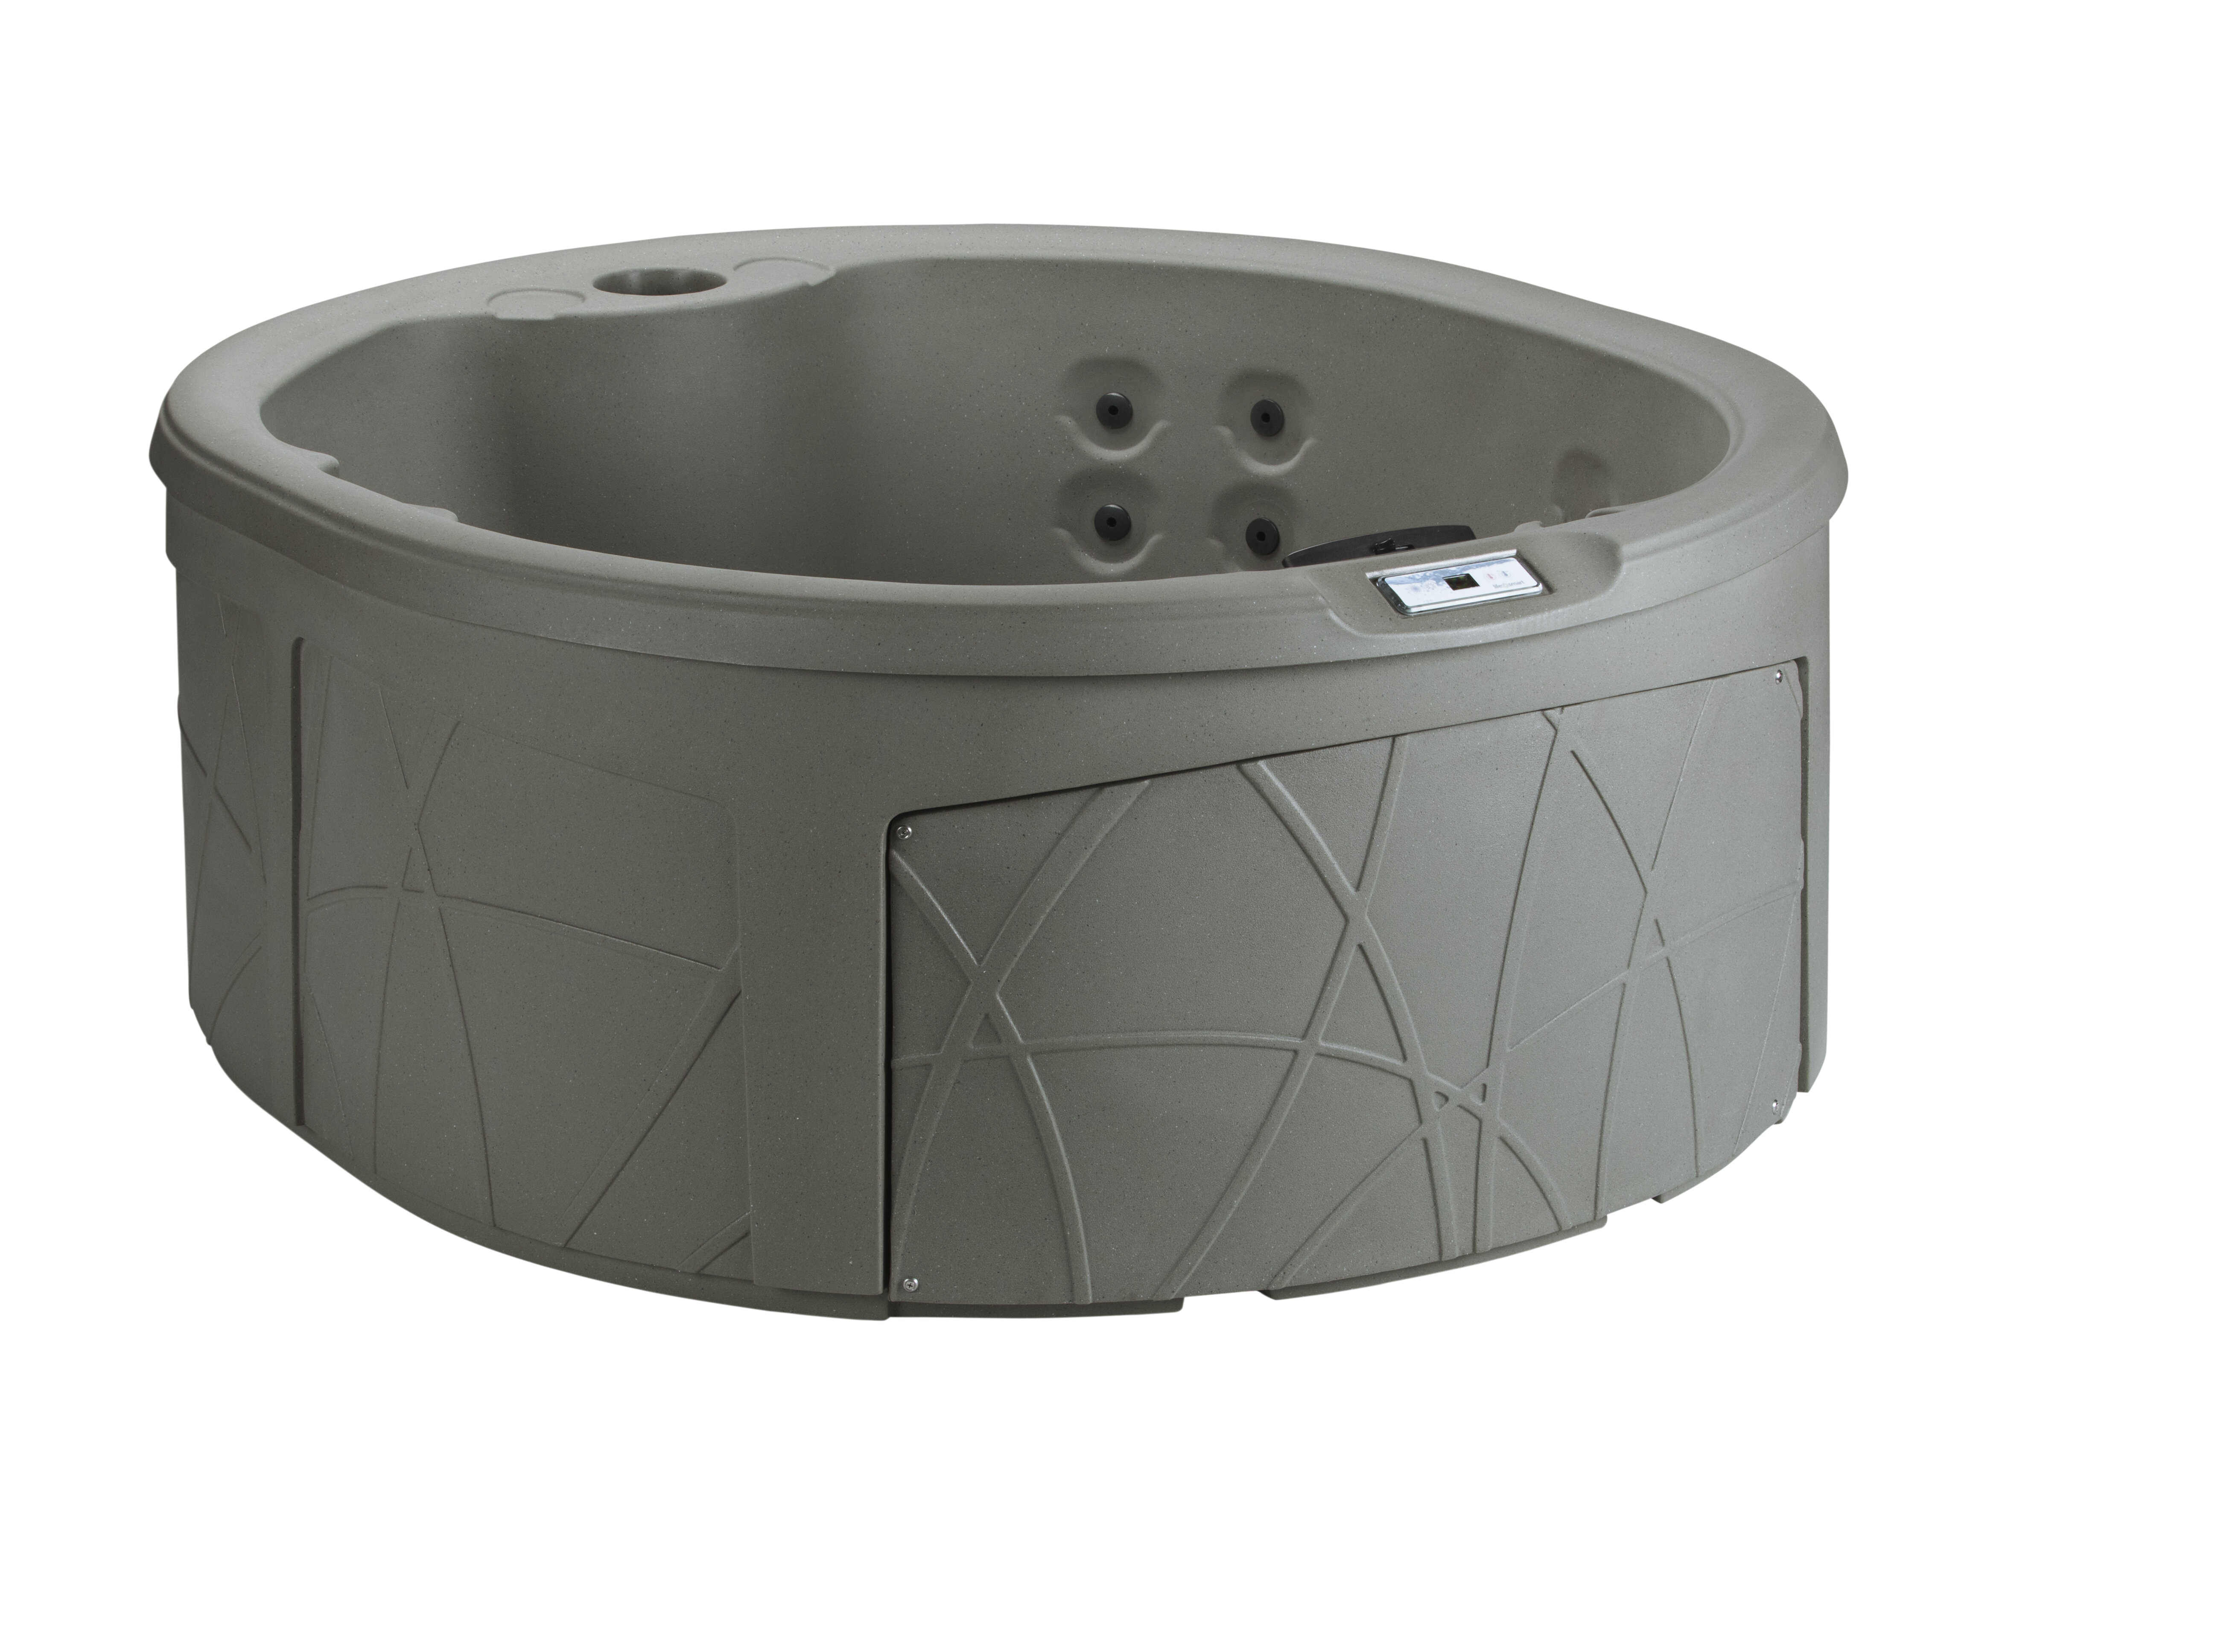 lifesmart p the person jet home spa depot tubs tub reviews hot